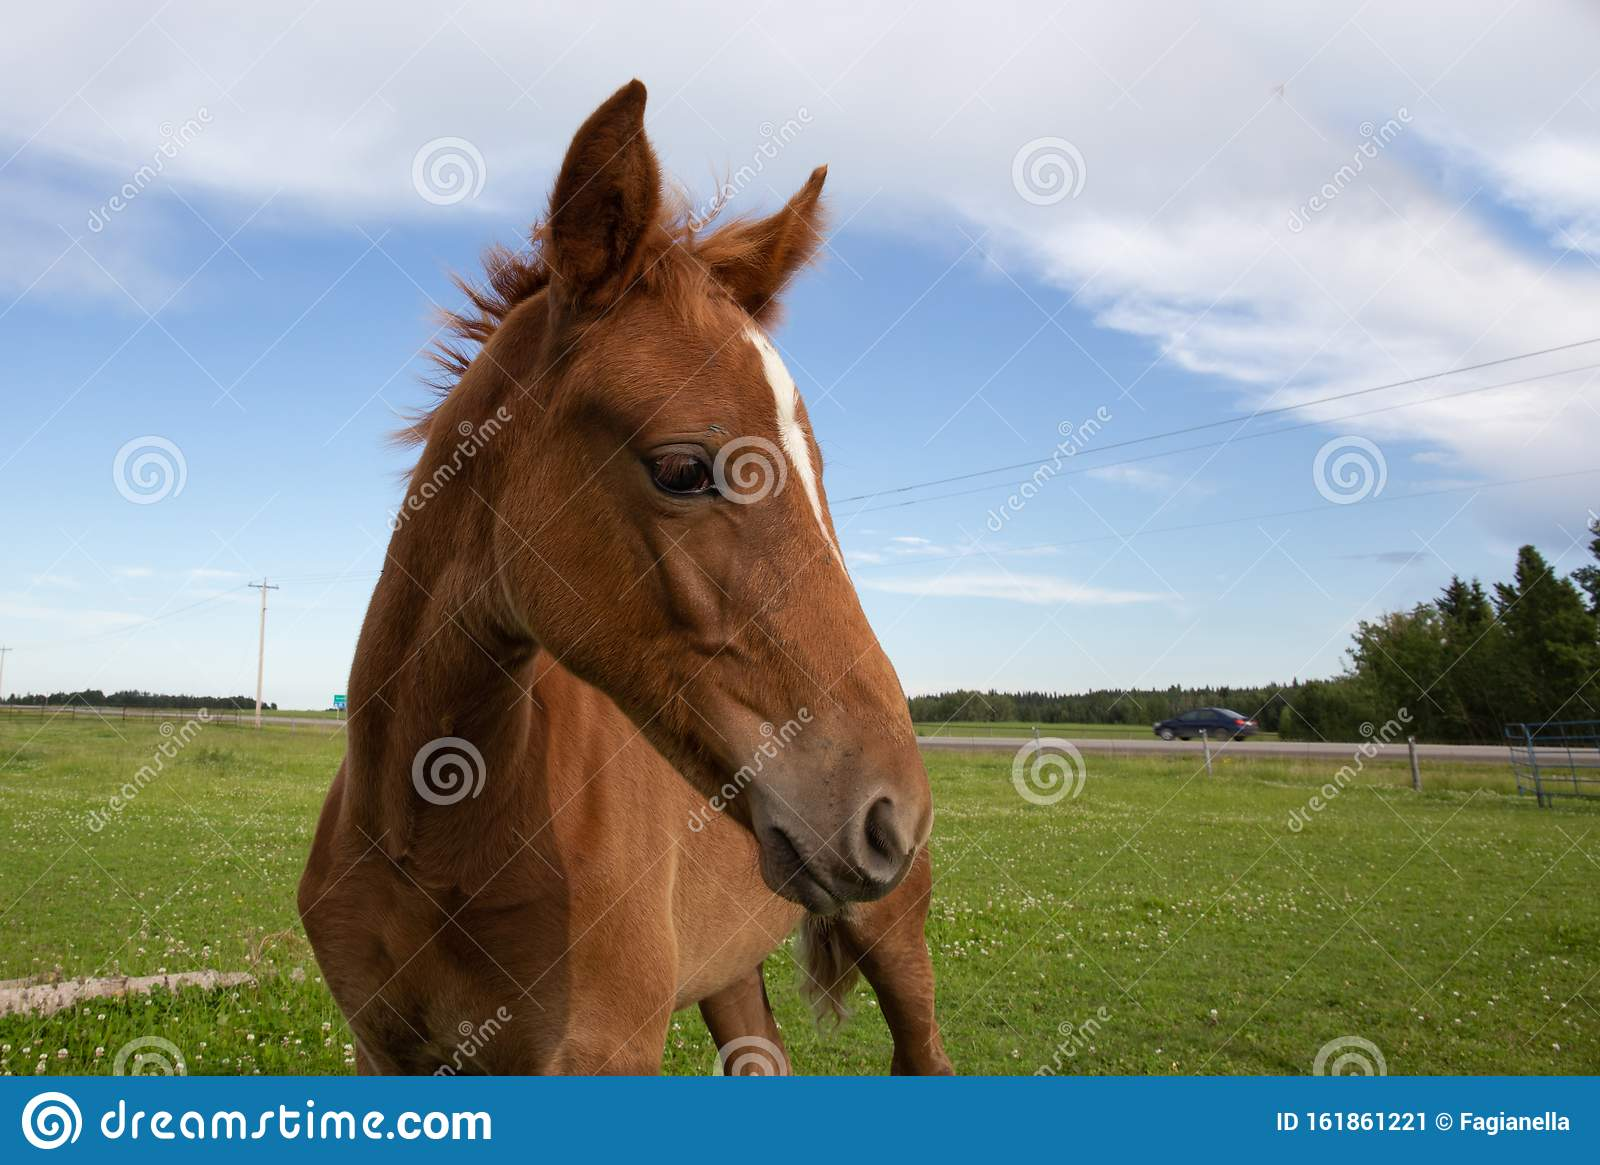 Young Chestnut Baby Horse Or Foal In A Field Funny Perspective Stock Image Image Of Canada Equine 161861221